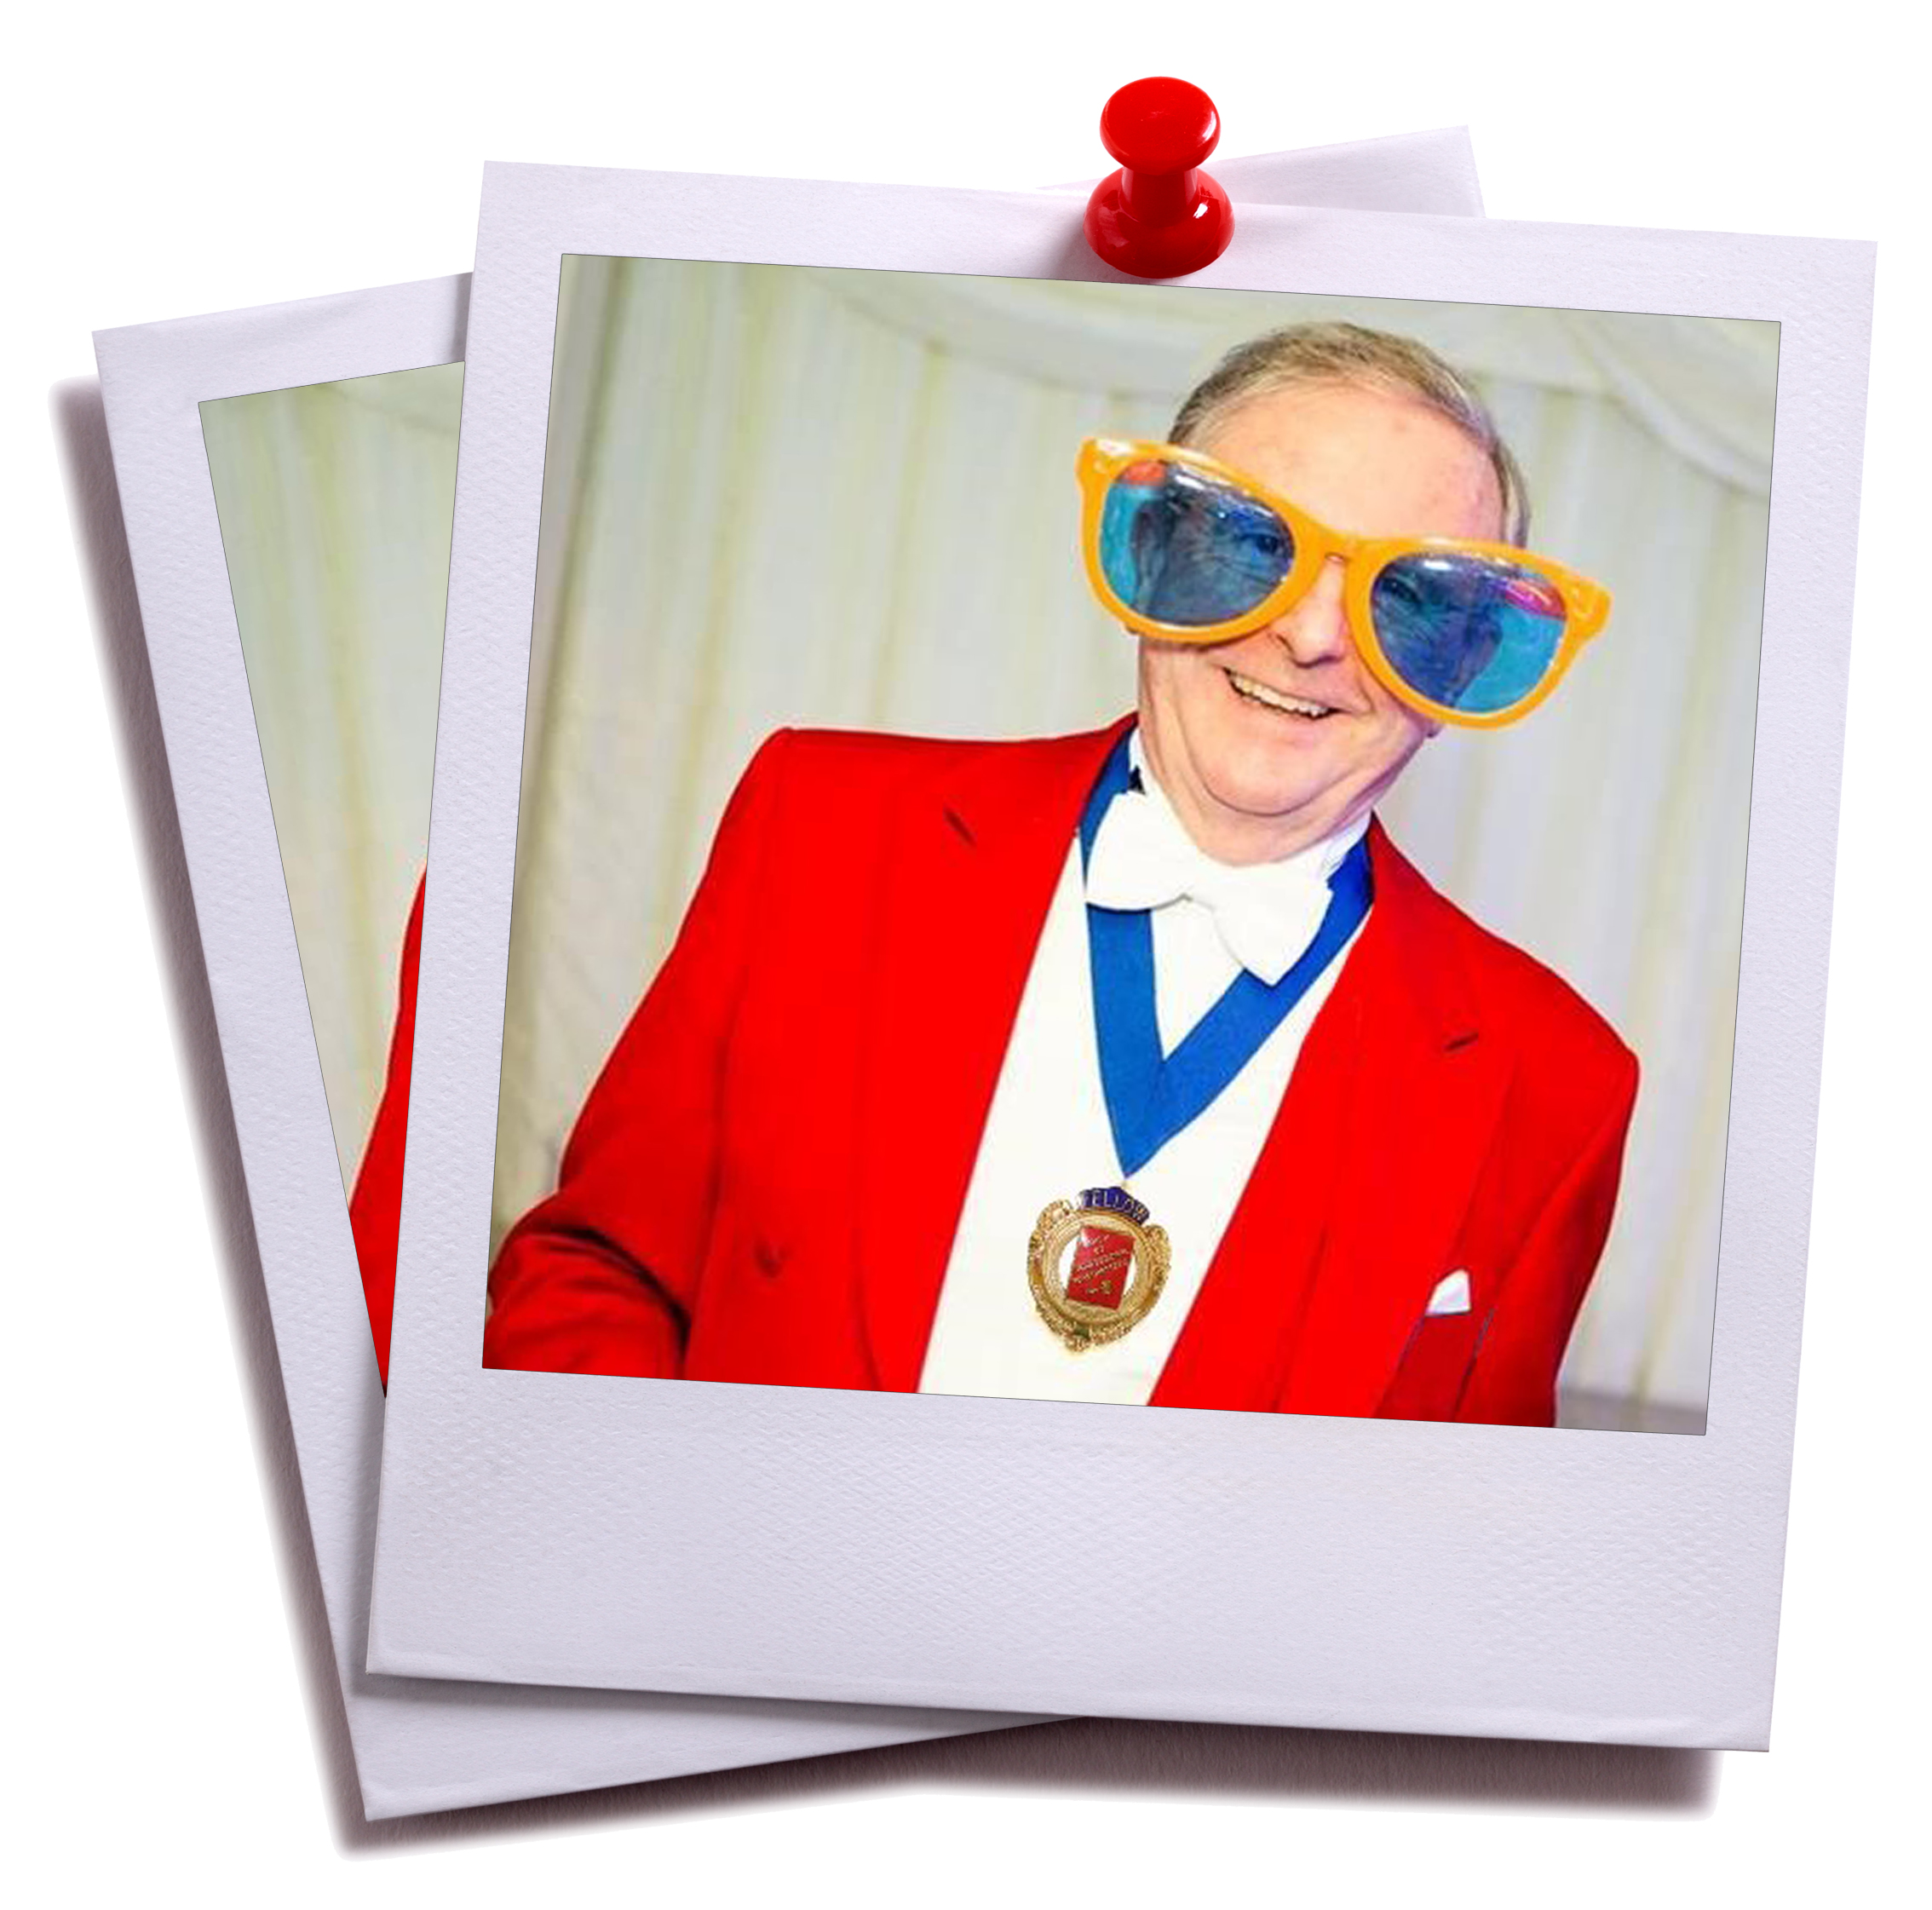 fun, professional toastmaster for weddings and civil ceremonies